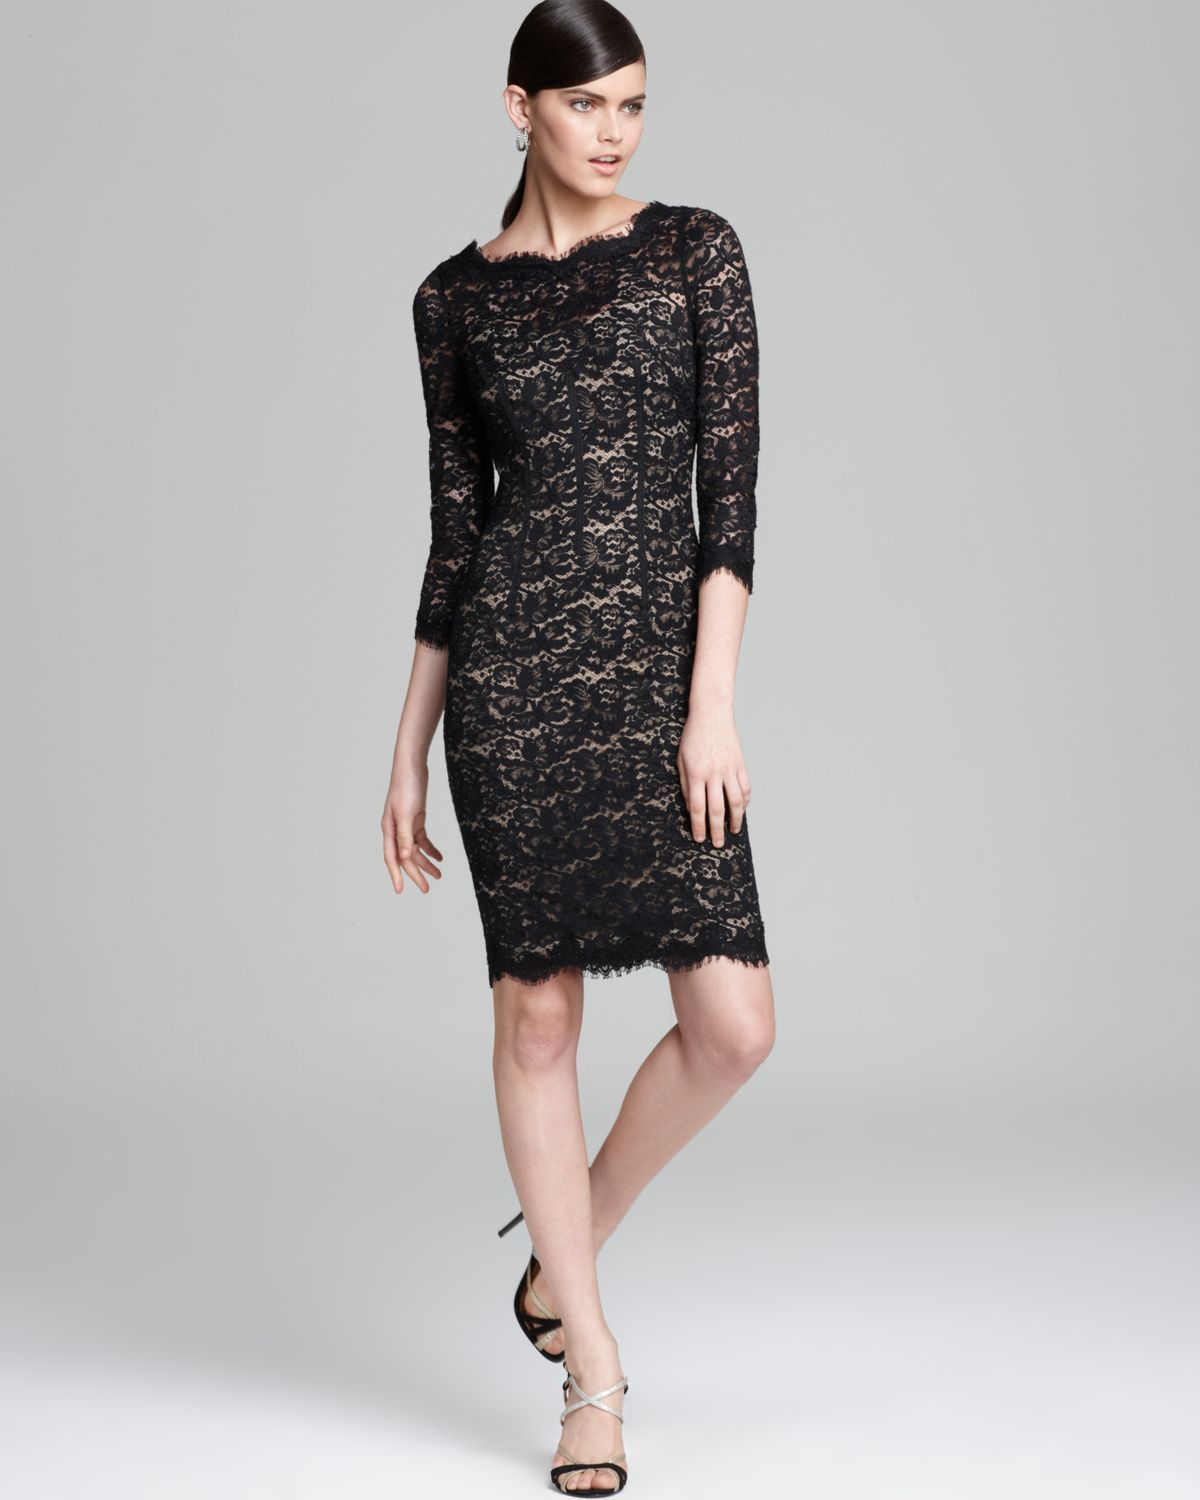 922ae9a6db2 ML Monique Lhuillier Lace Dress Three Quarter Sleeve with Open Back ...